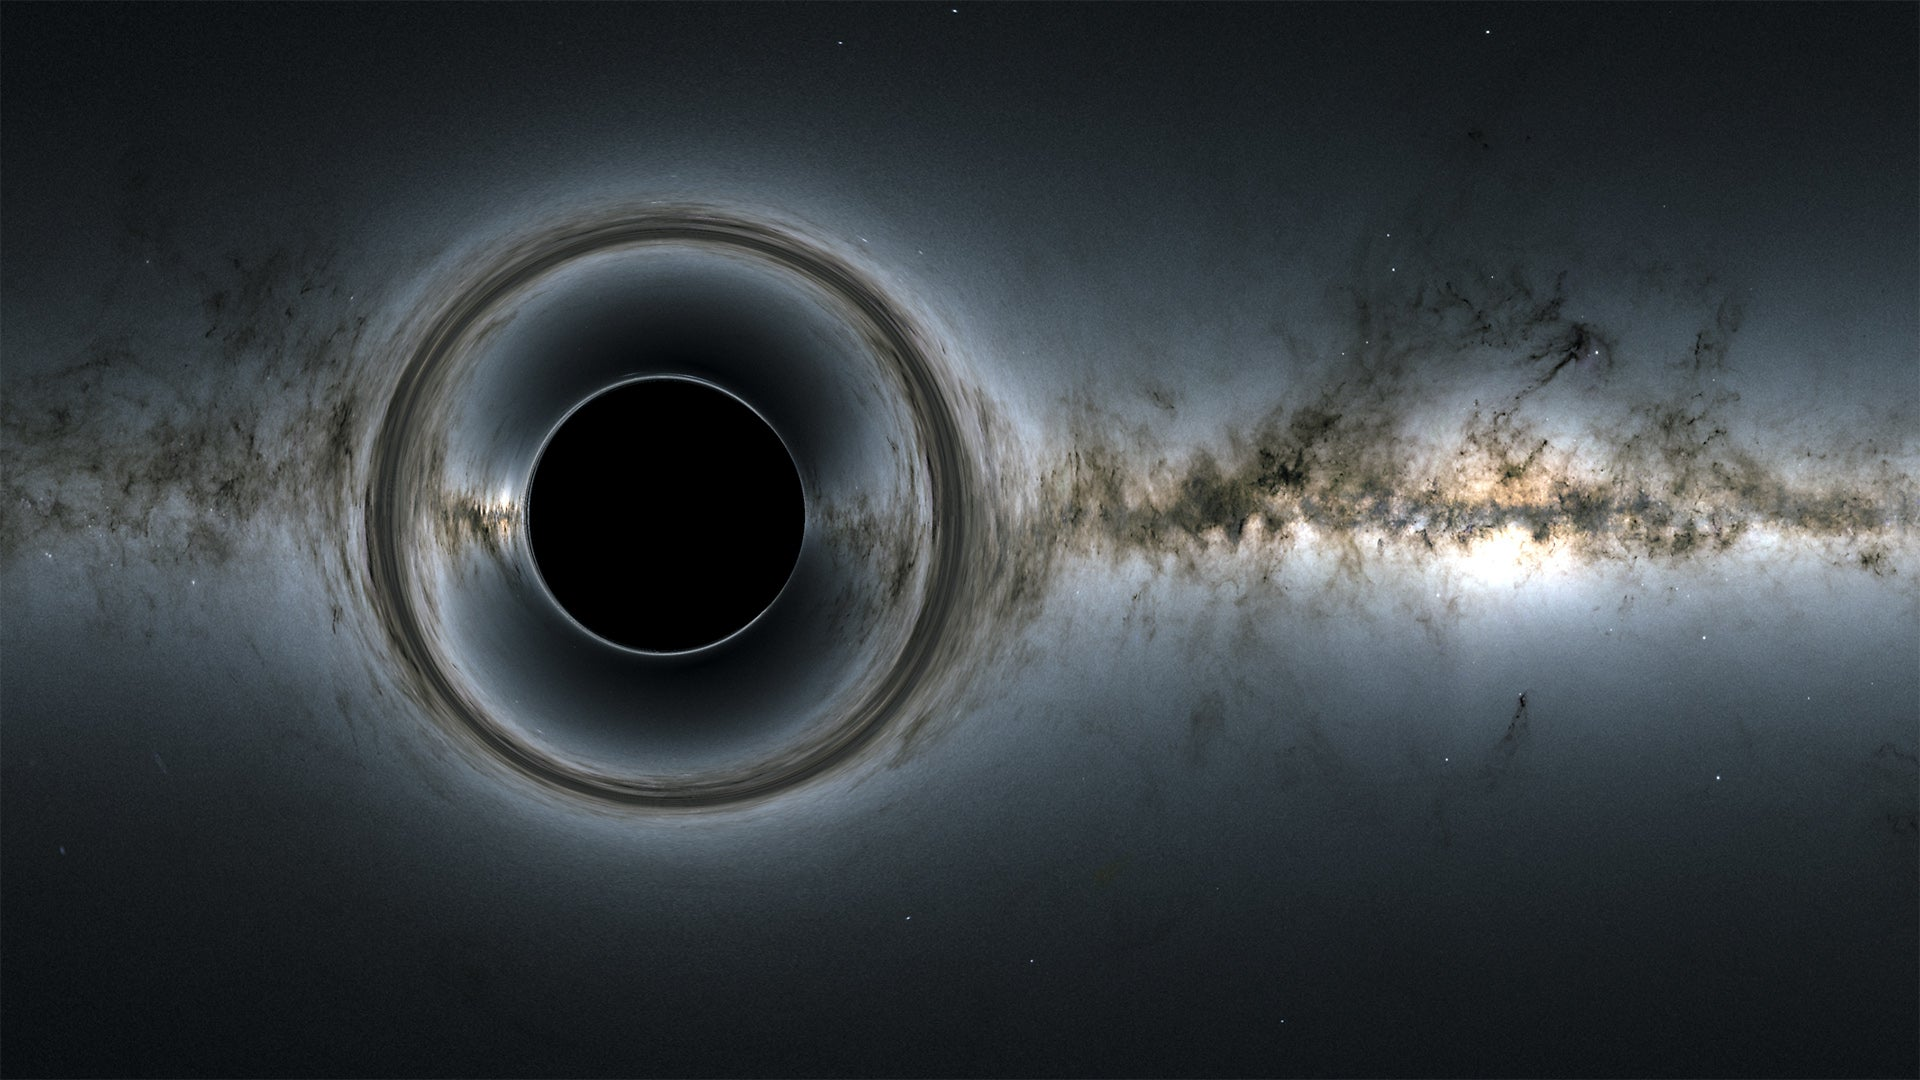 Simulation of a black hole.